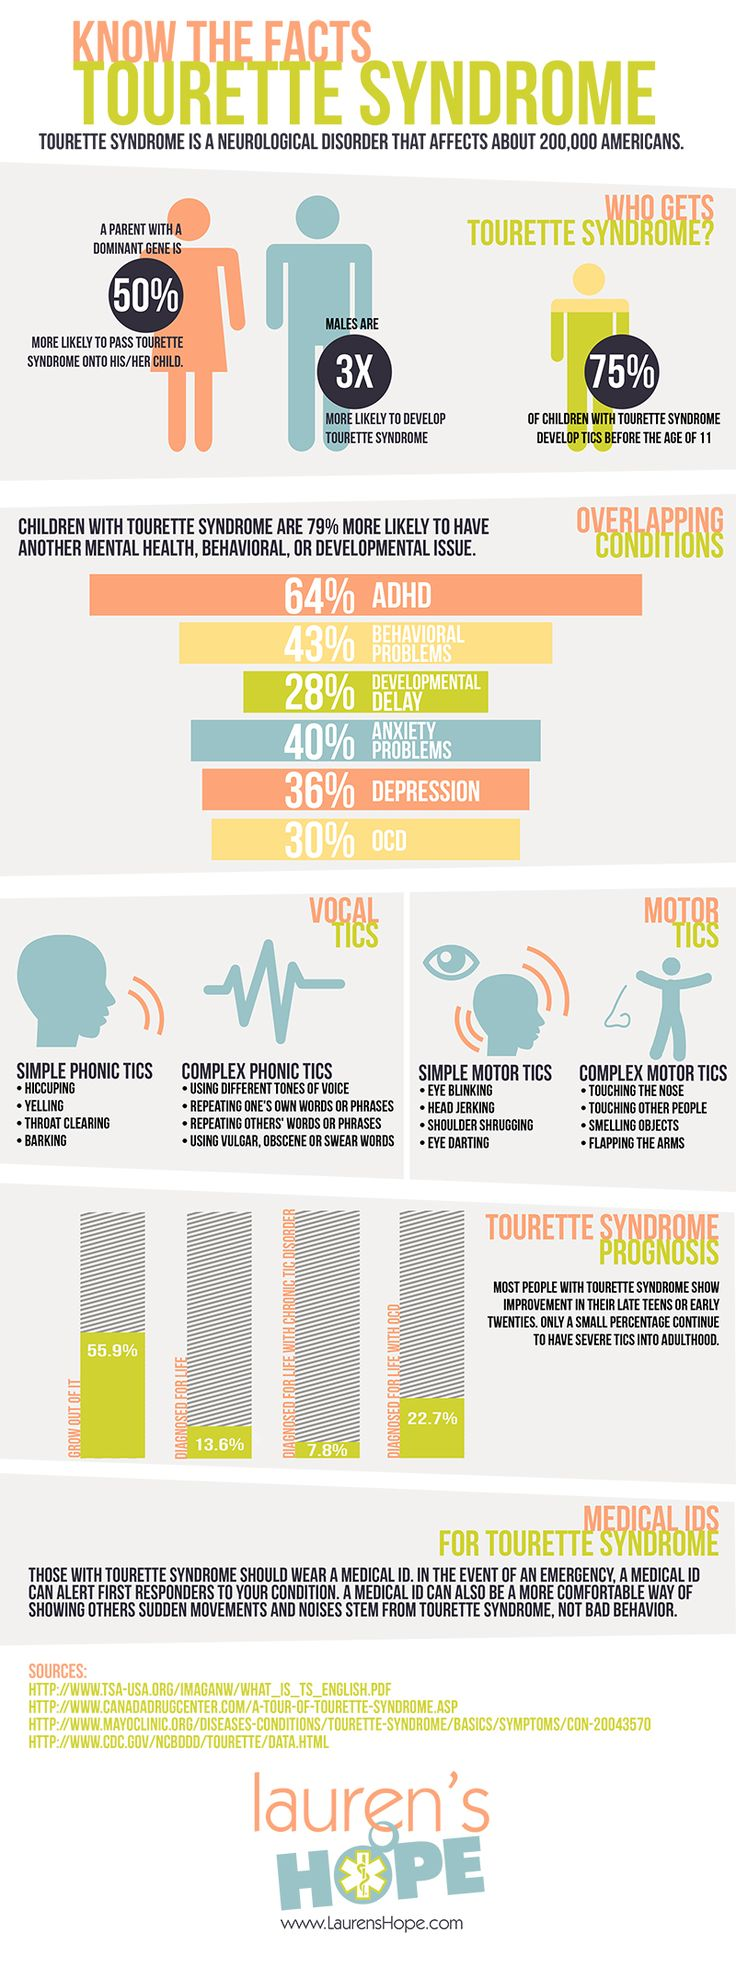 #TouretteSyndrome is a neurological disorder that affects 200,000 Americans, mainly young boys. #Tourettes #infographic: Site, Tourette Info, Tourett Infographic, Tourettes Syndrome, Adhd Tourettes, Tic, Tourett Syndrome Infographic, Tourette Syndrome, Disorders